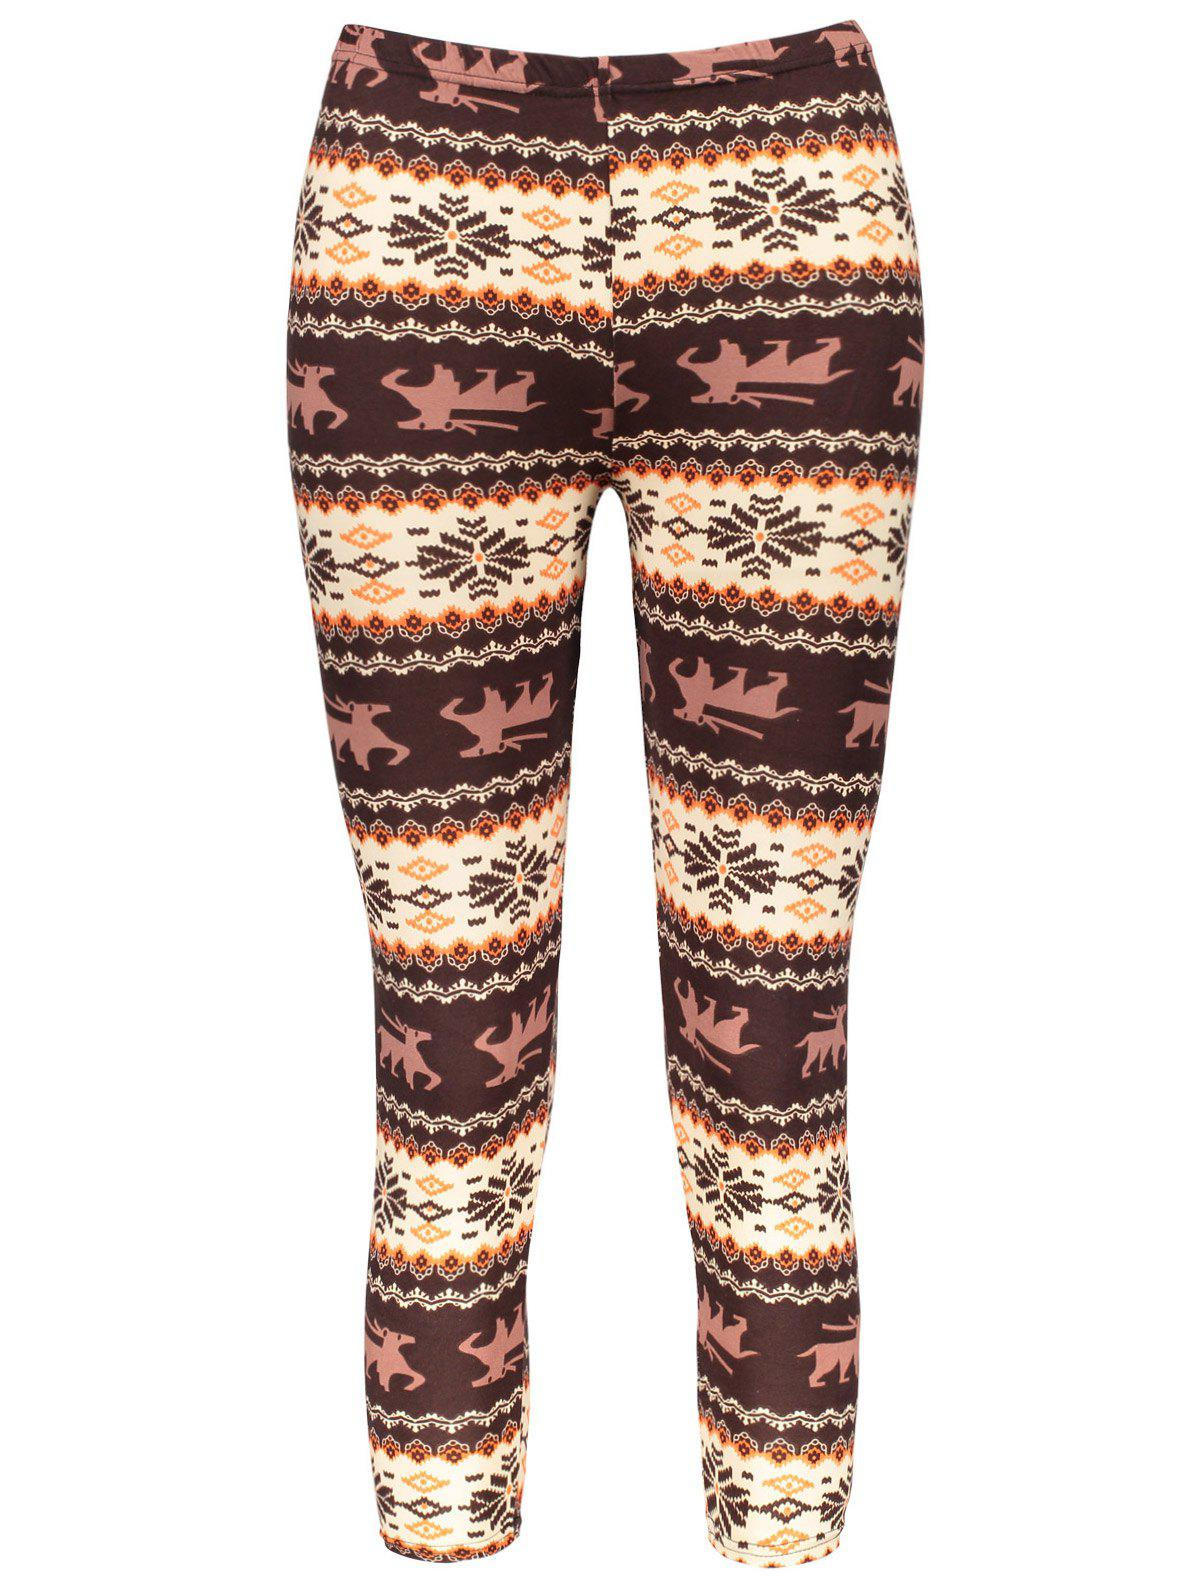 Chic de la femme Hit couleur Imprimer Leggings stretch - multicolore ONE SIZE(FIT SIZE XS TO M)